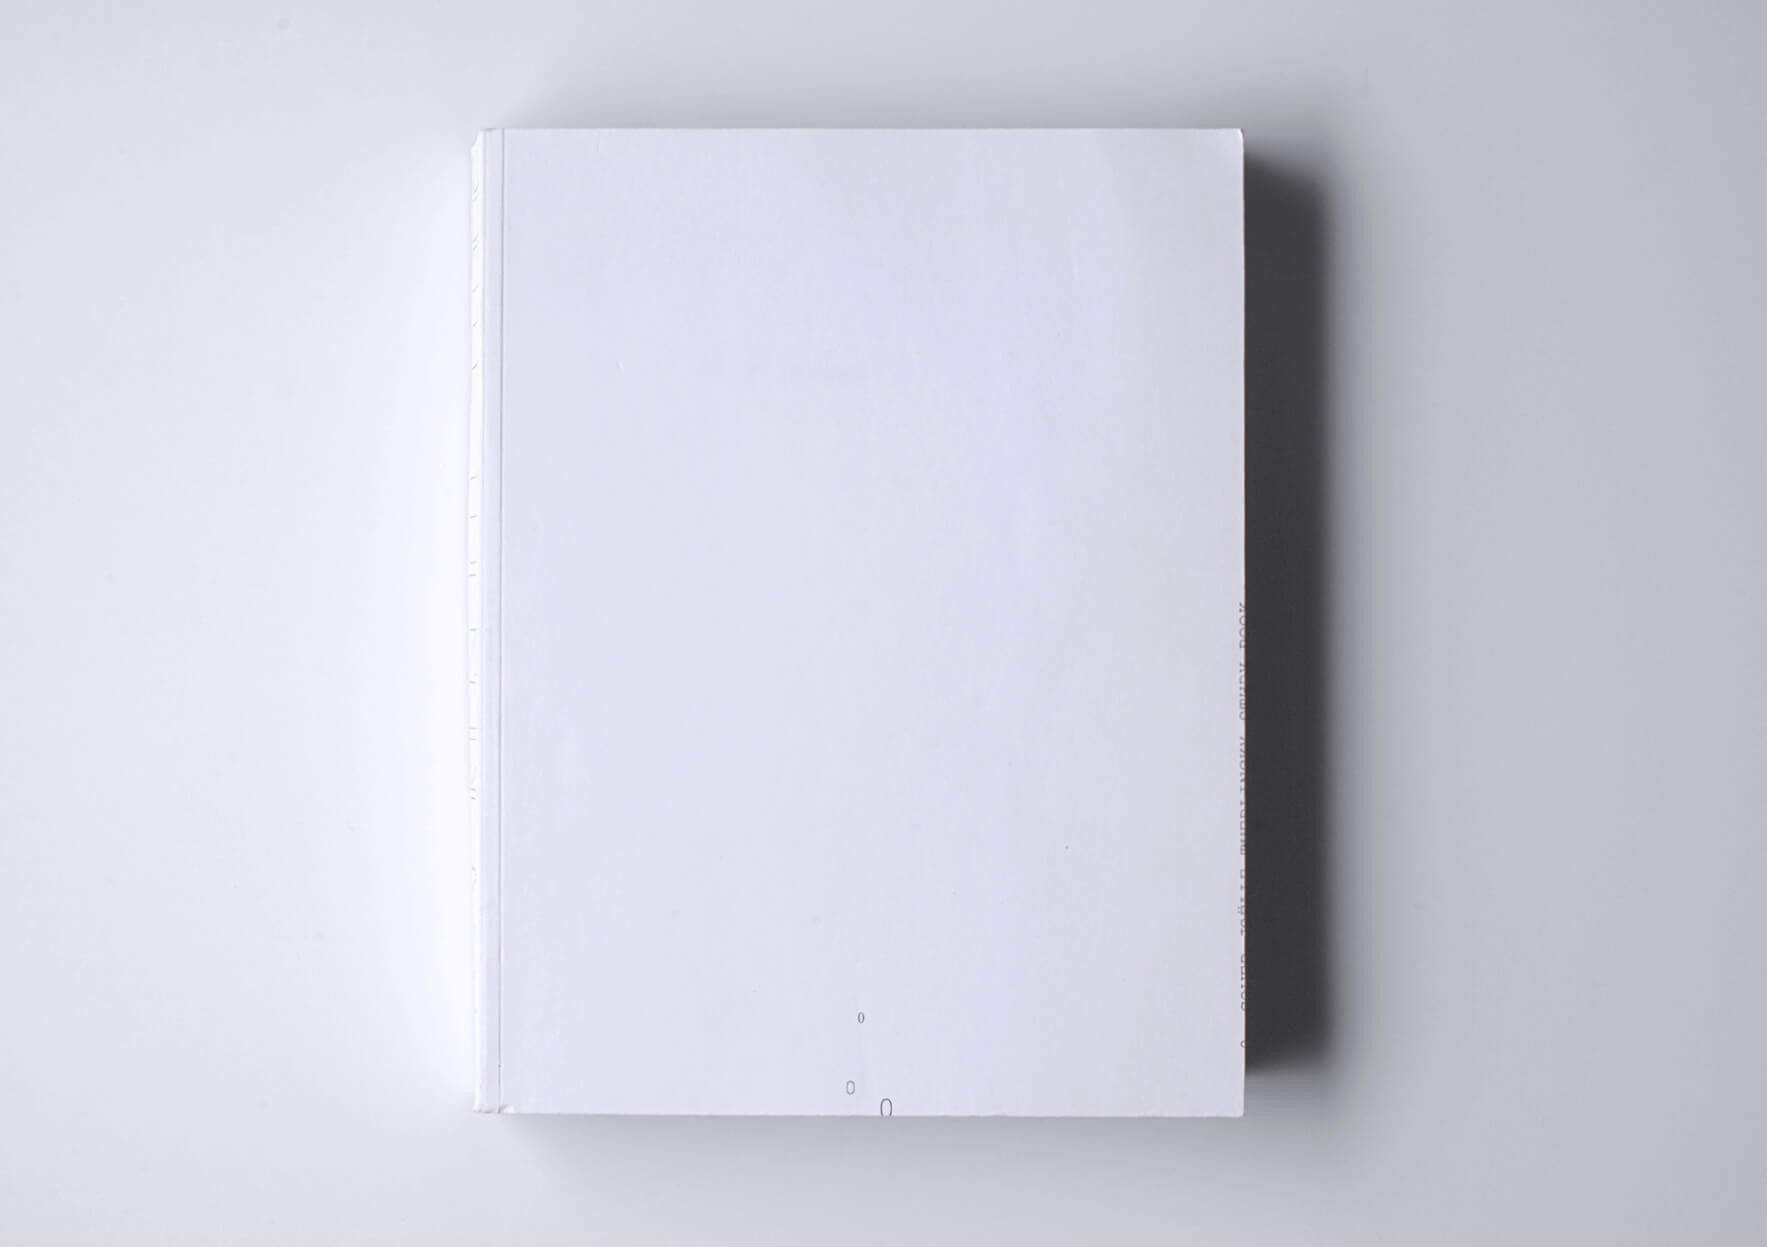 Joëlle Tuerlinckx Study Book (Drawing Papers 59), 2007 21,5 x 27.8 cm, 560 p. Textos en inglés Ed. MER. Paper Kunsthalle, The Drawing Center, and The Renaissance Society at the University of Chicago | Mother | ProjecteSD